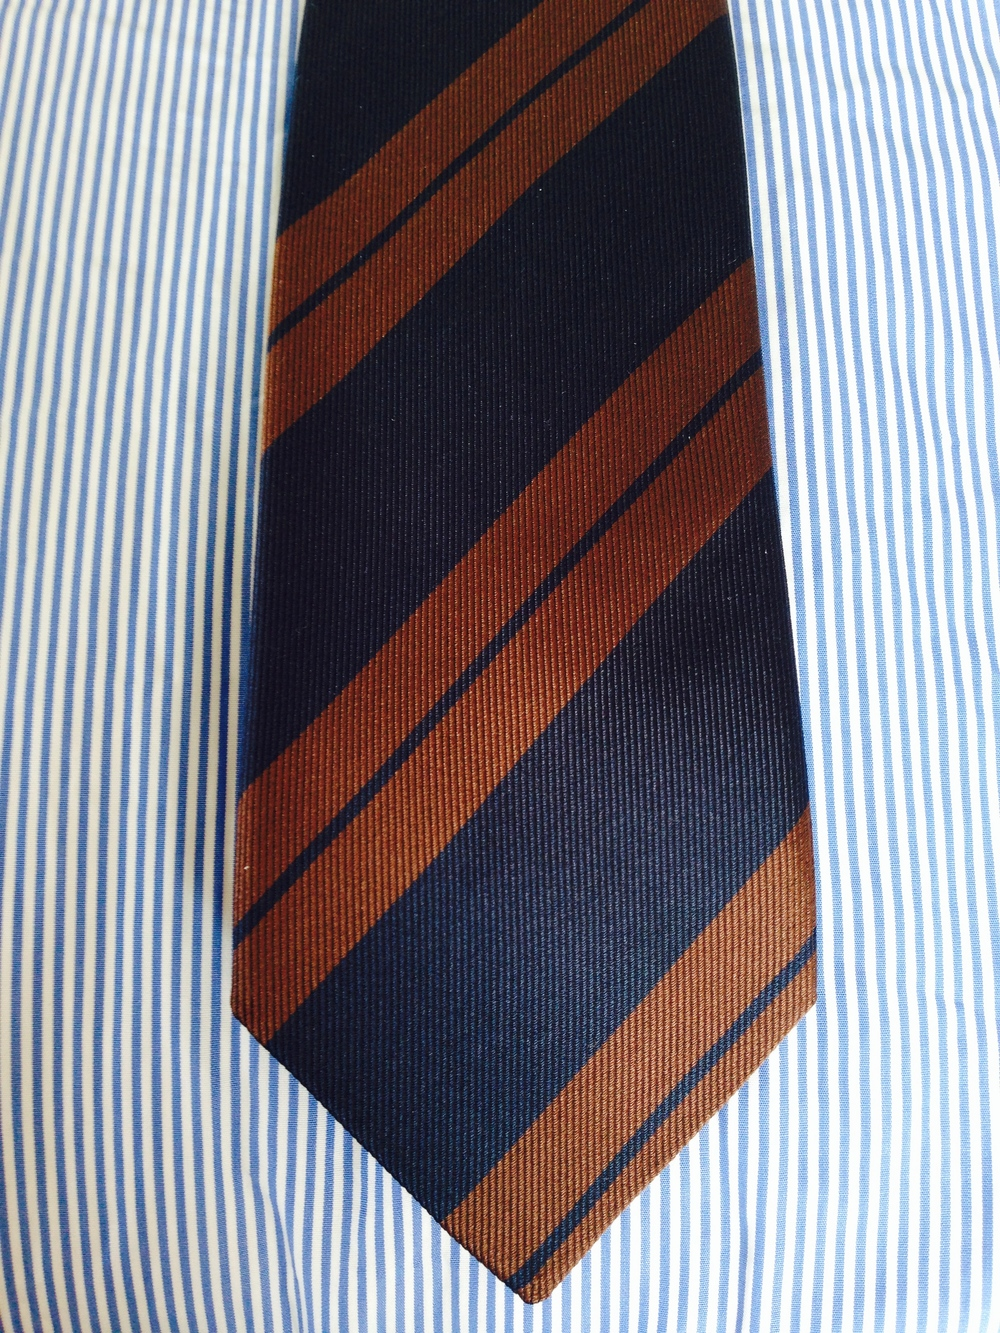 Dress stripes demonstrating versatility, working equally as well with a repp double stripe tie.